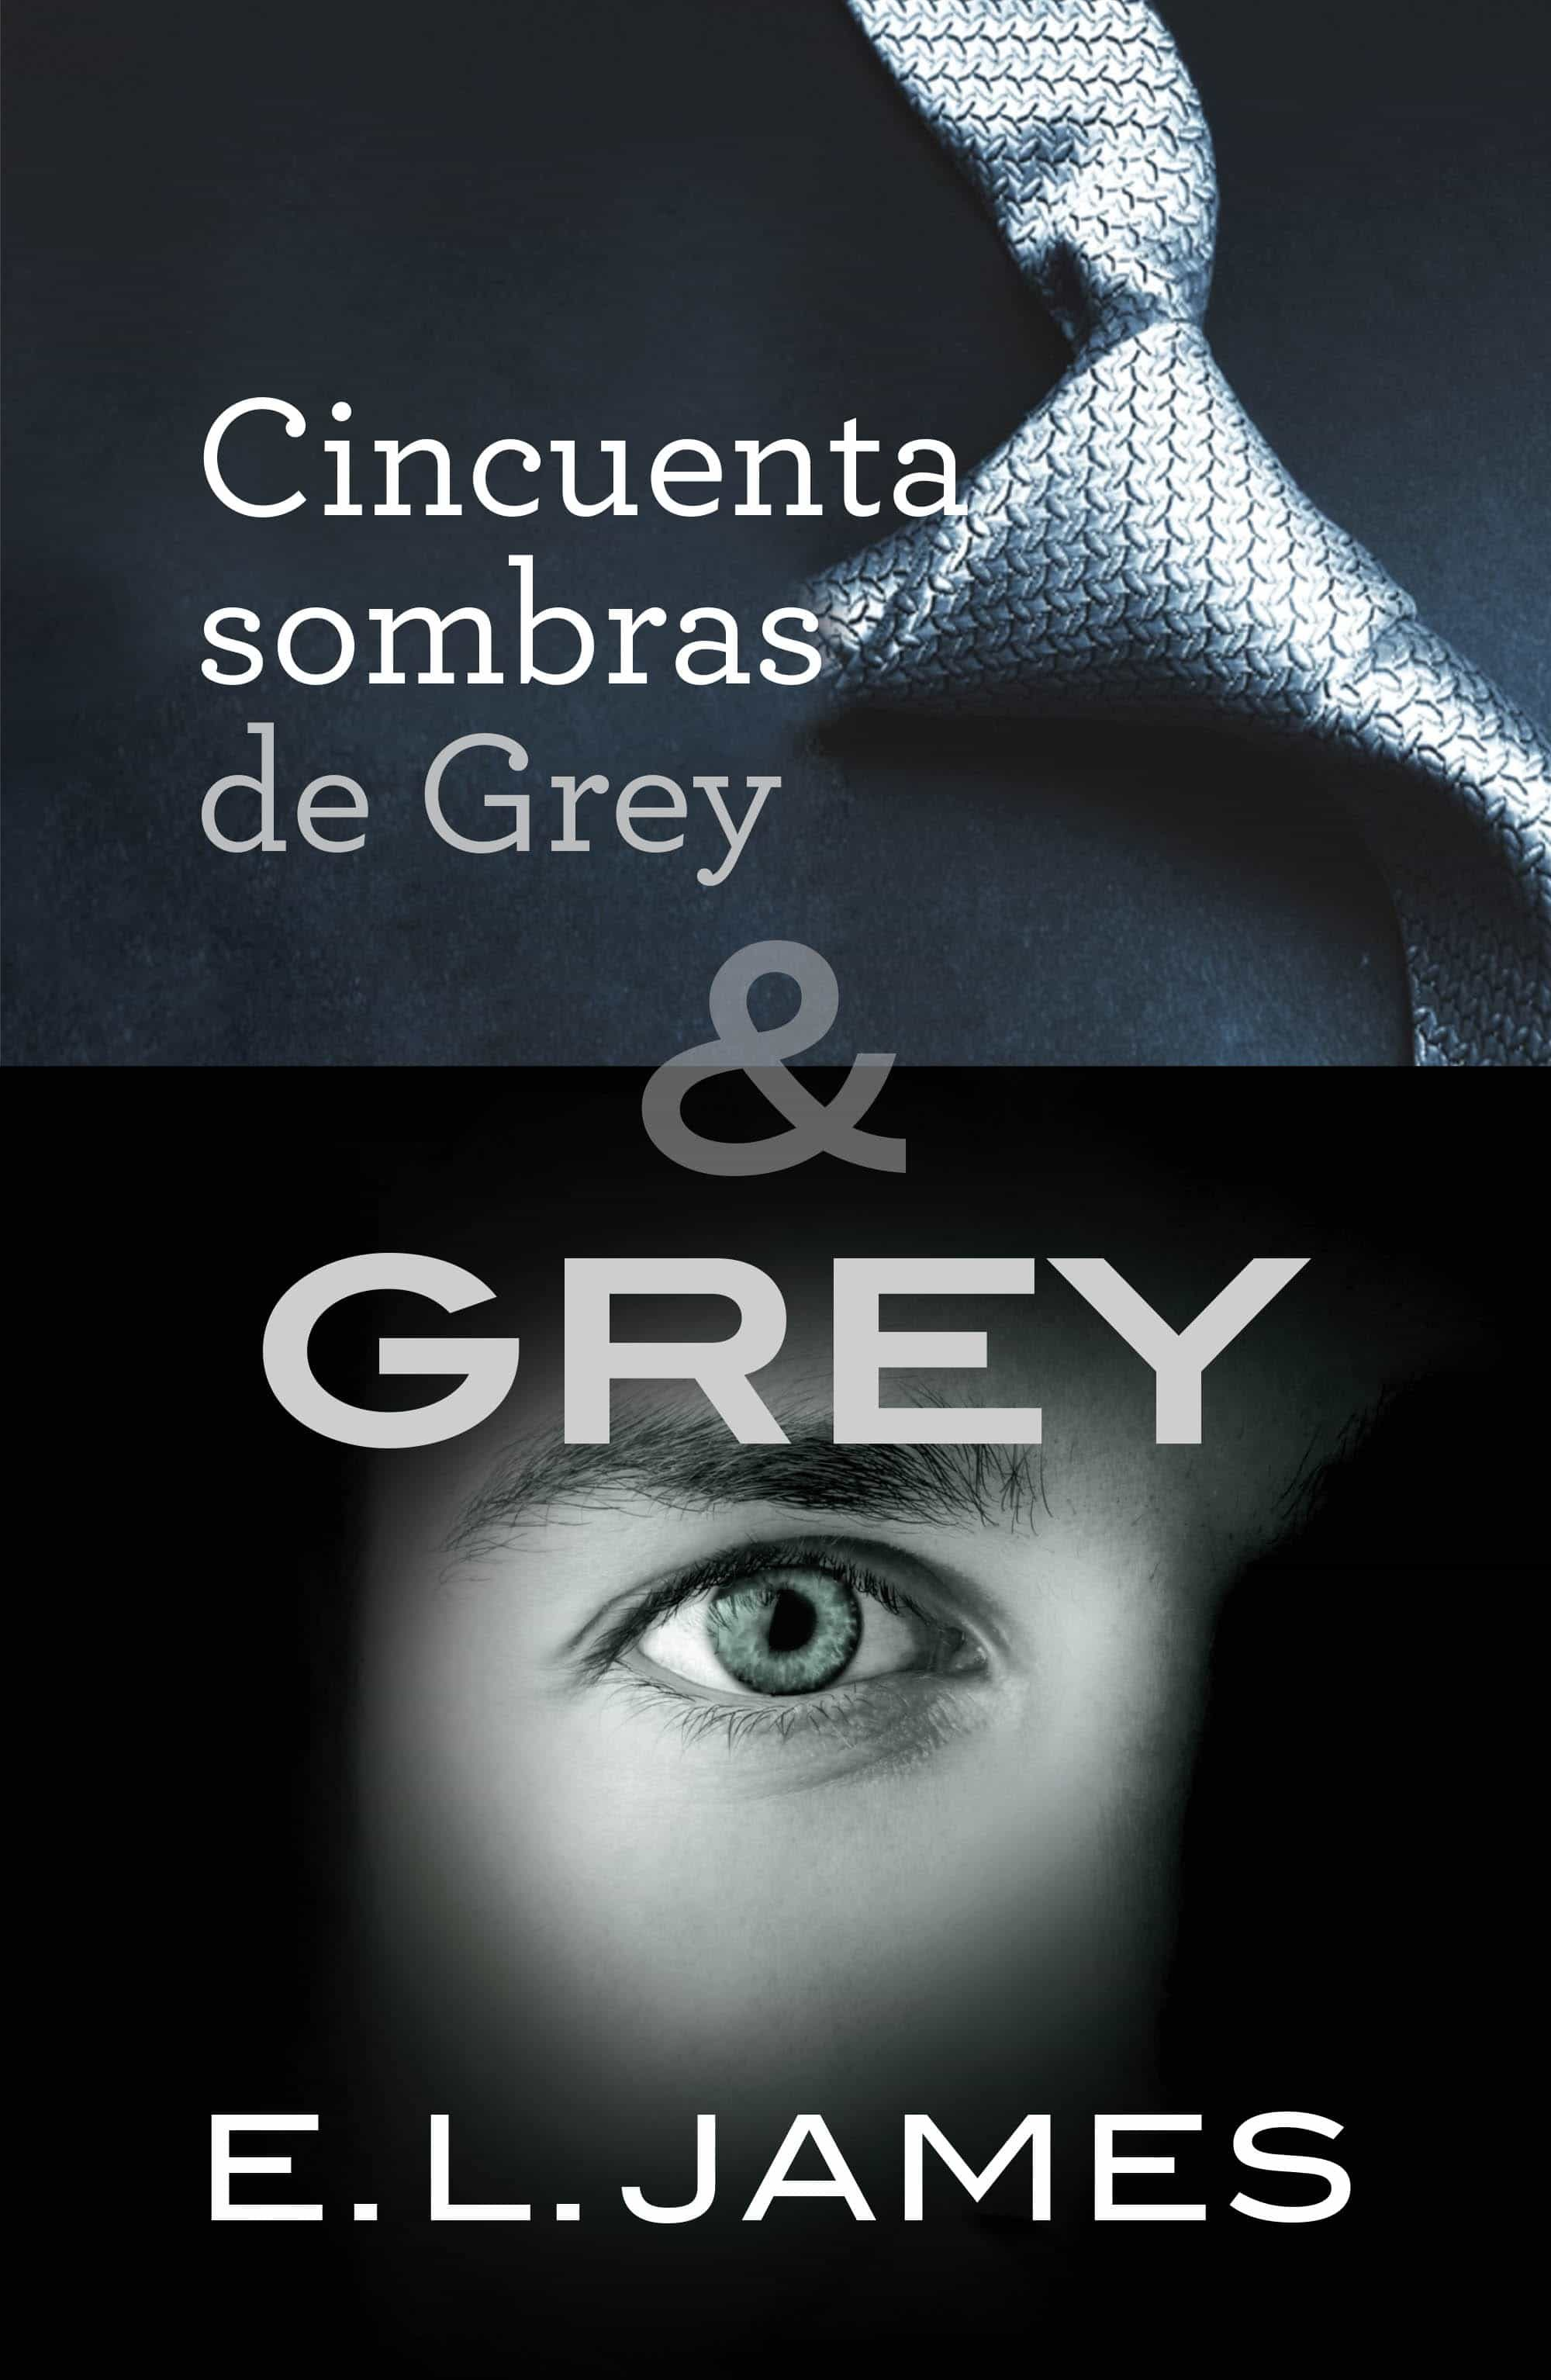 Leer Libro 50 Sombras De Grey Pack Cincuenta Sombras De Grey Grey Ebook E L James Descargar Libro Pdf O Epub 9788425353741